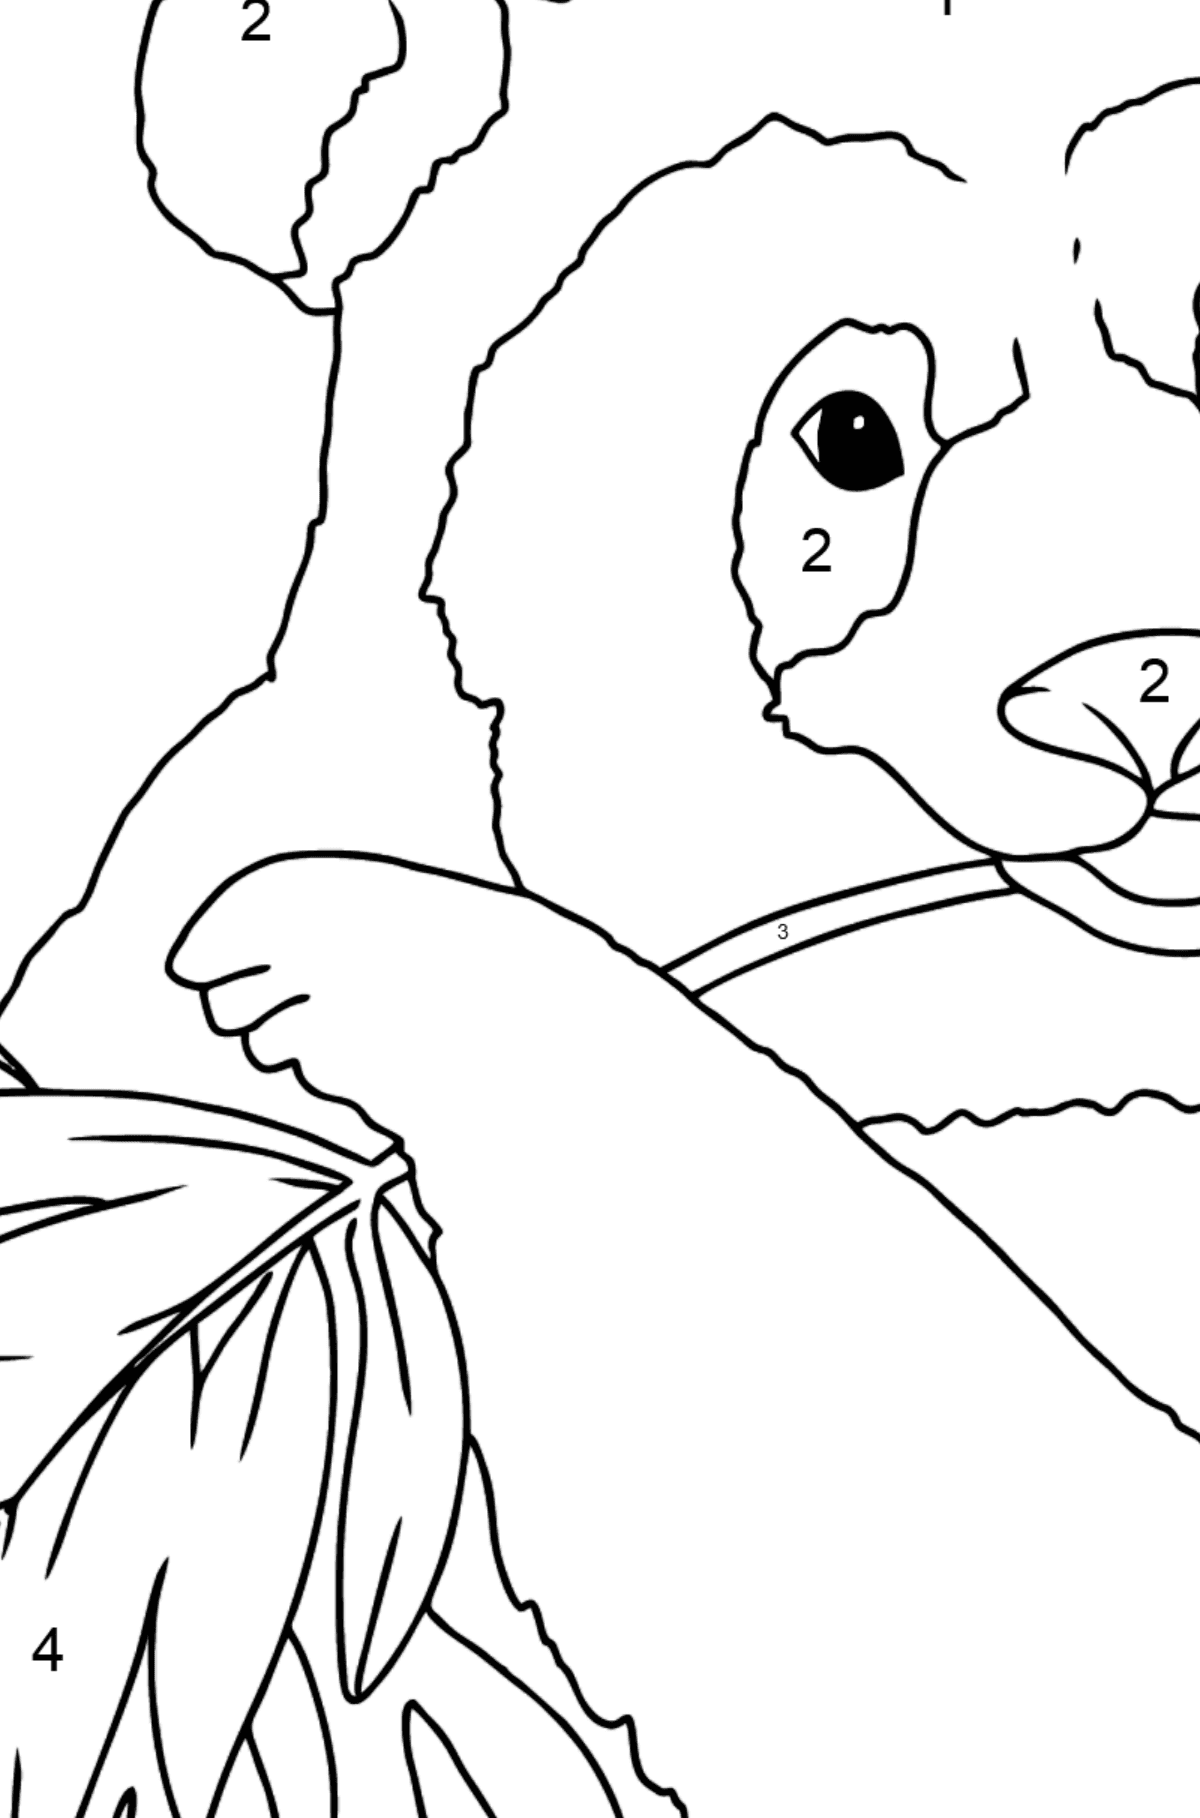 Coloring Page  - A Panda is Eating Leaves - Coloring by Numbers for Kids